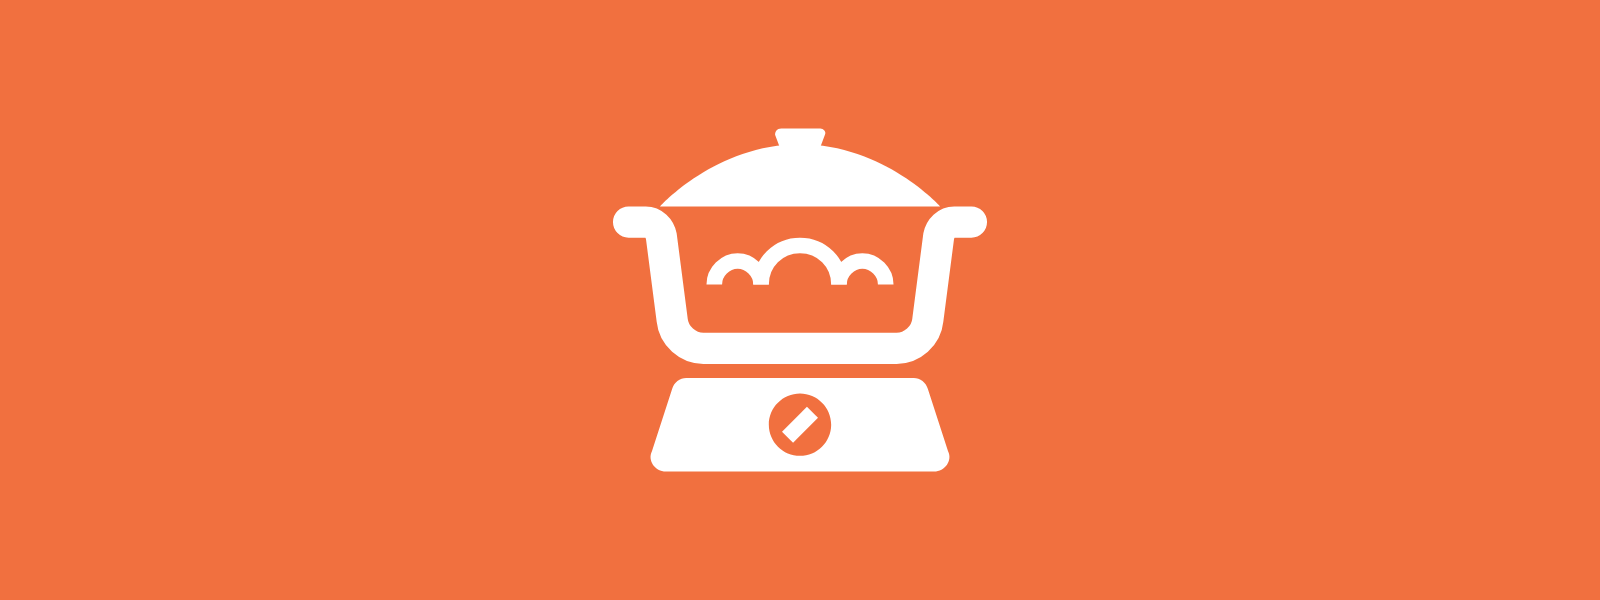 Icon background of food appliance